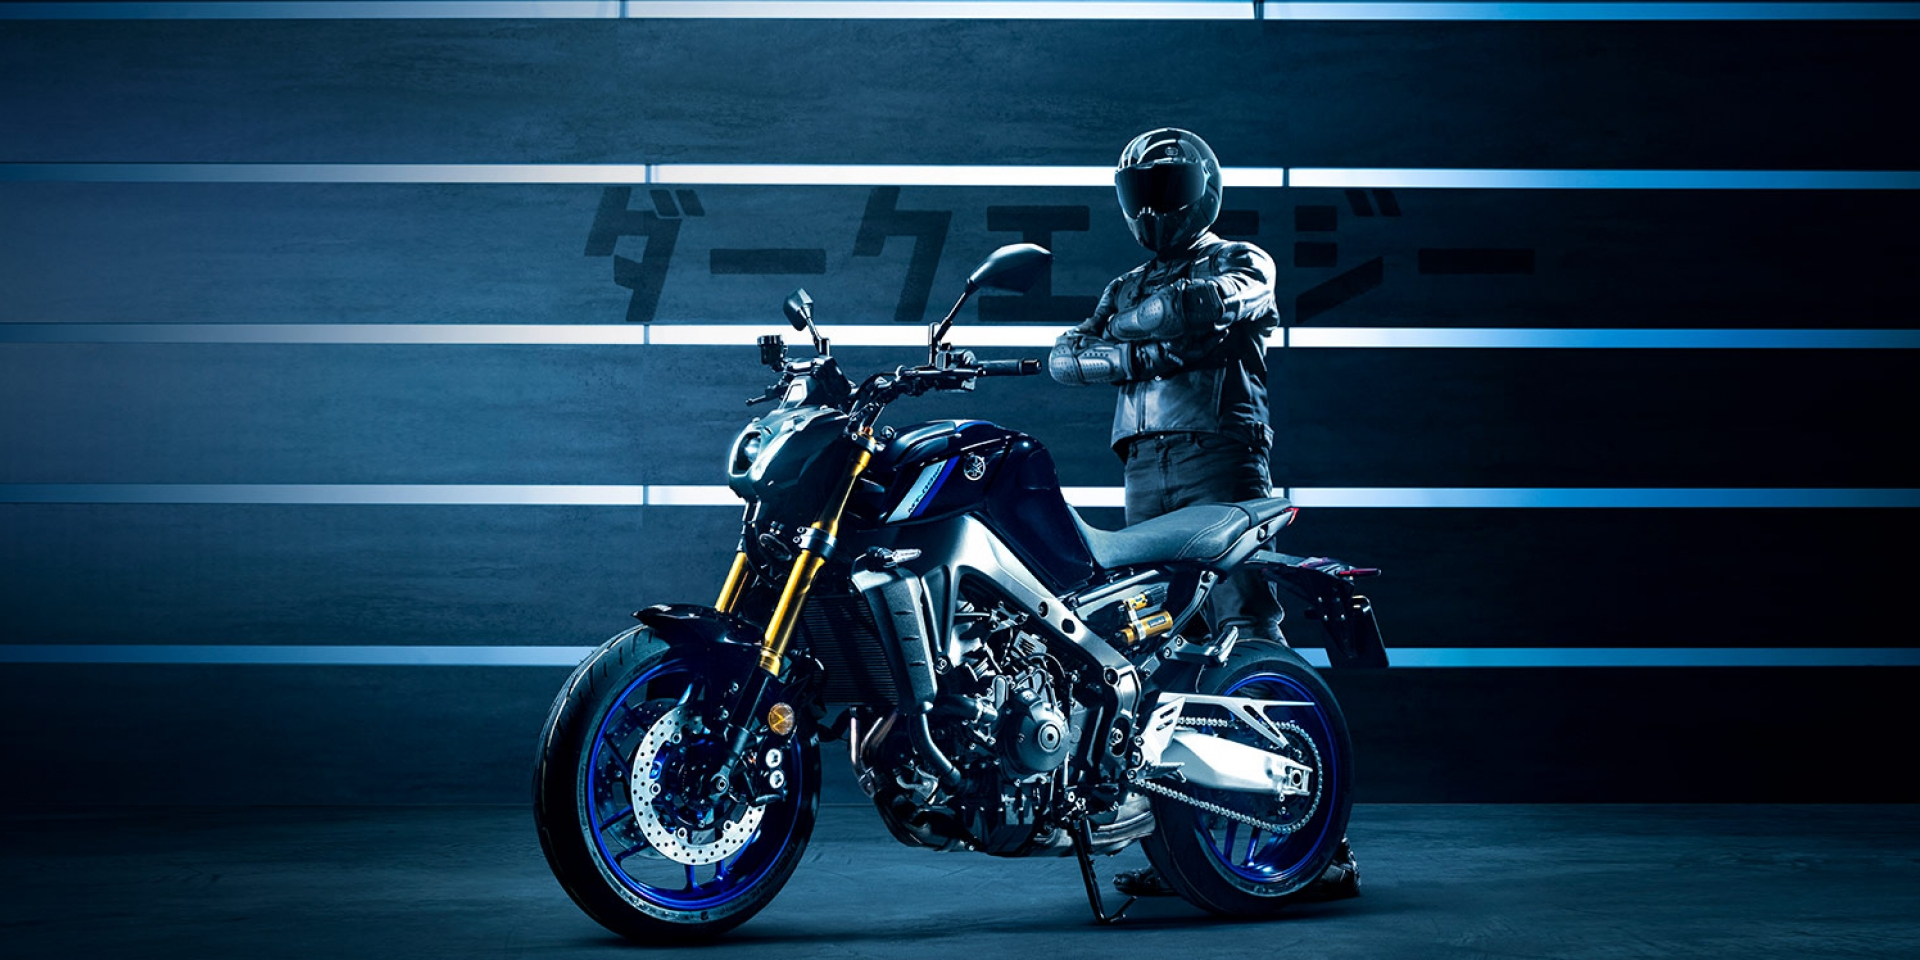 懸吊升級、定速巡航加入。2021 Yamaha MT-09 SP 海外發表!